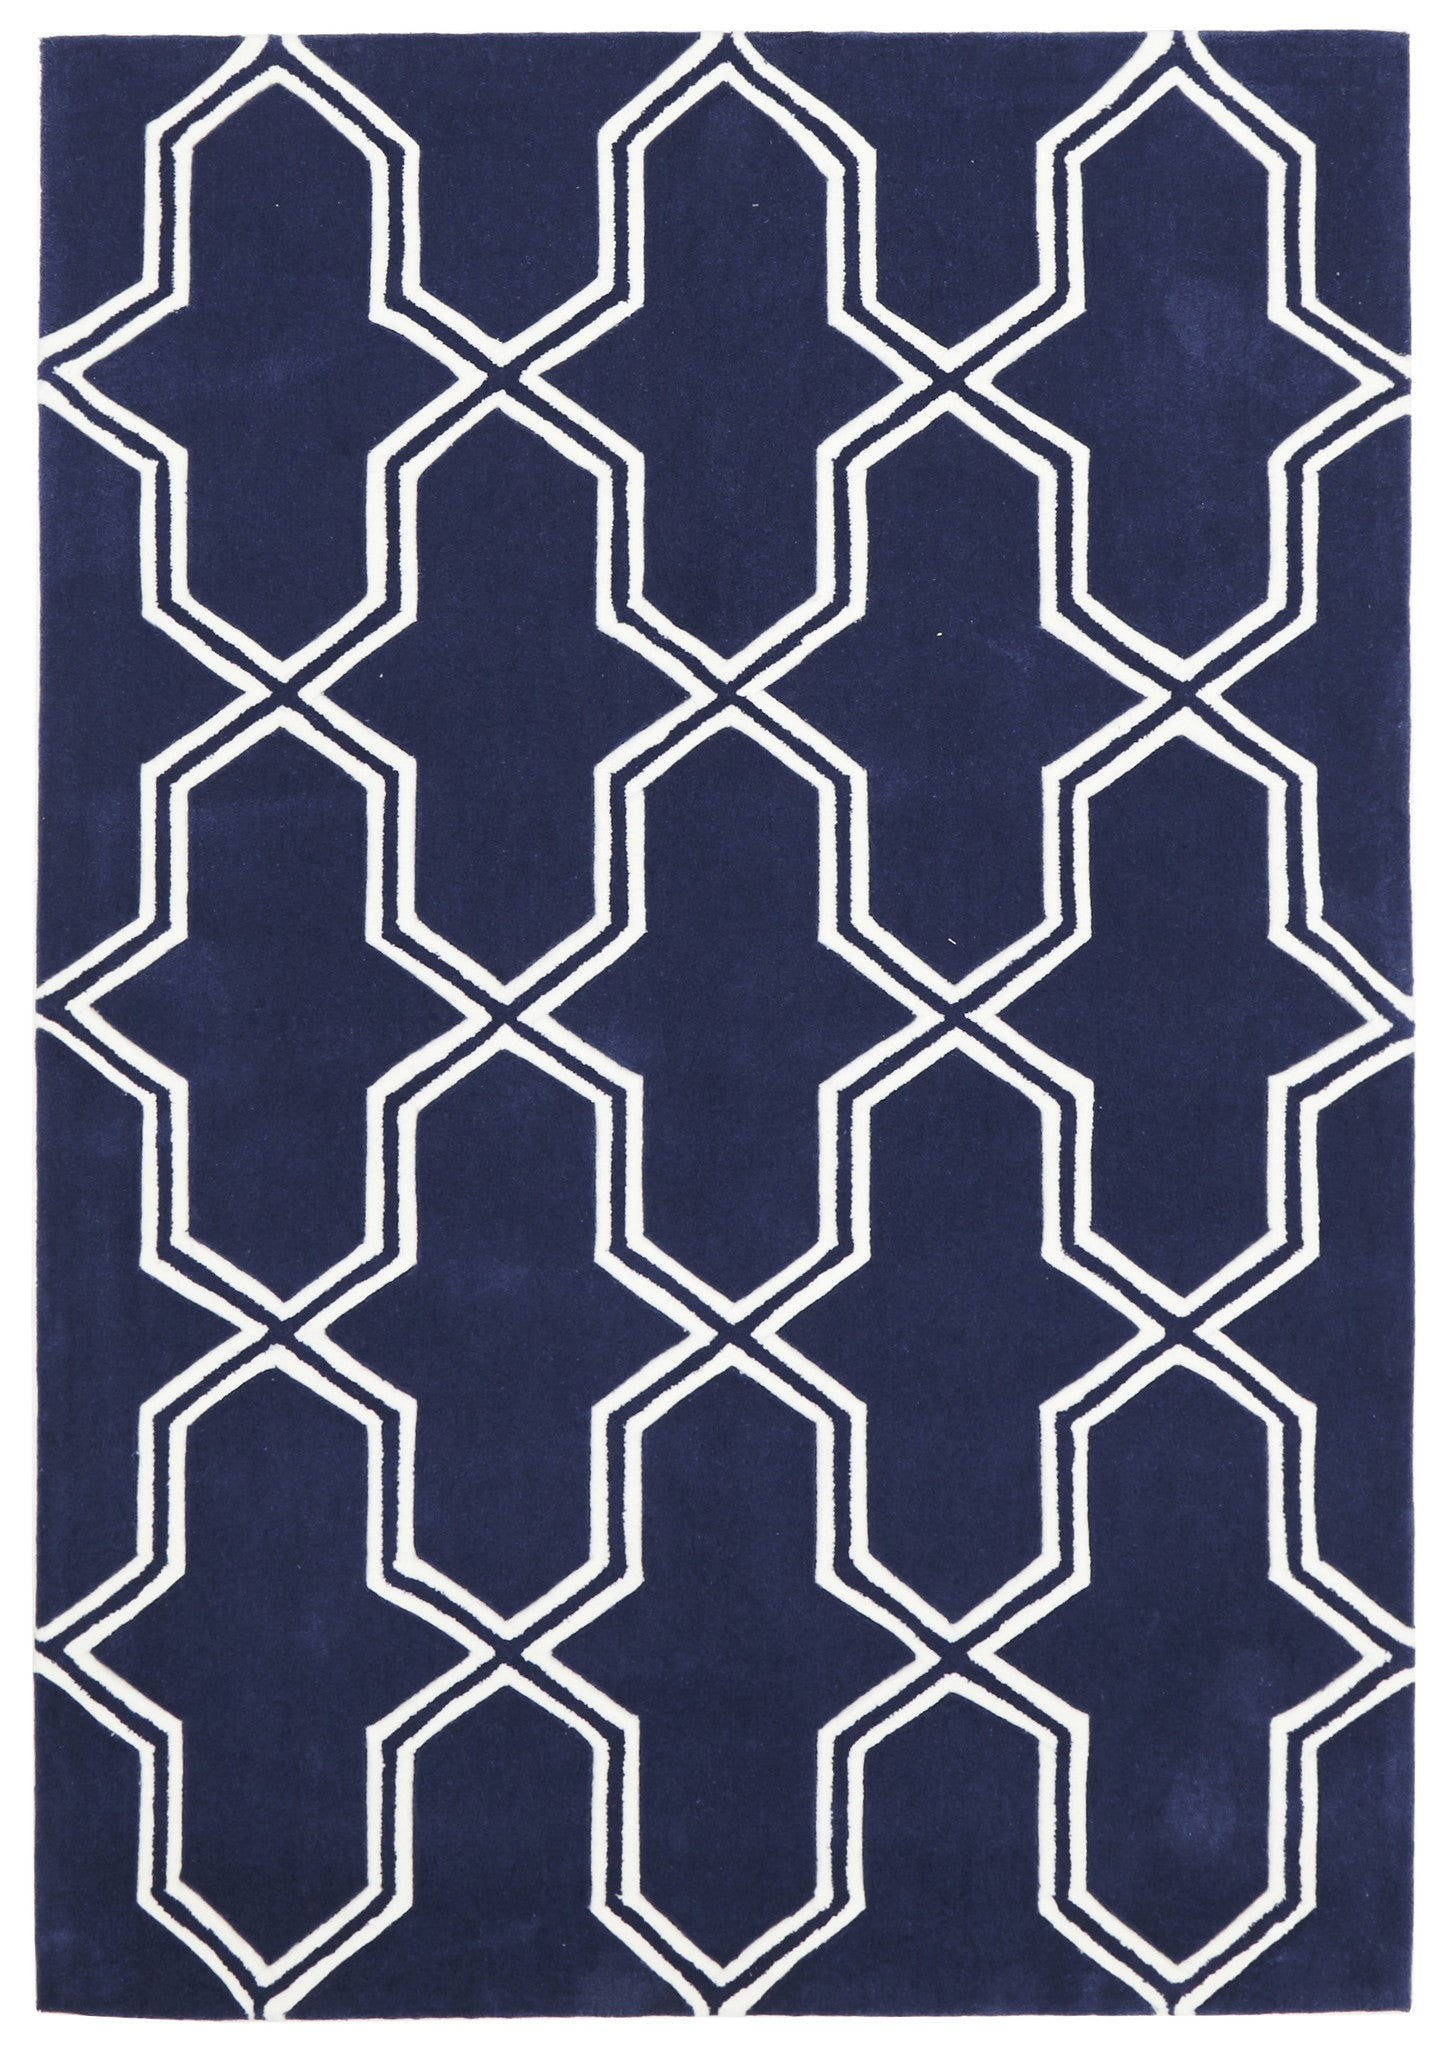 Gold 639 Rug - Navy